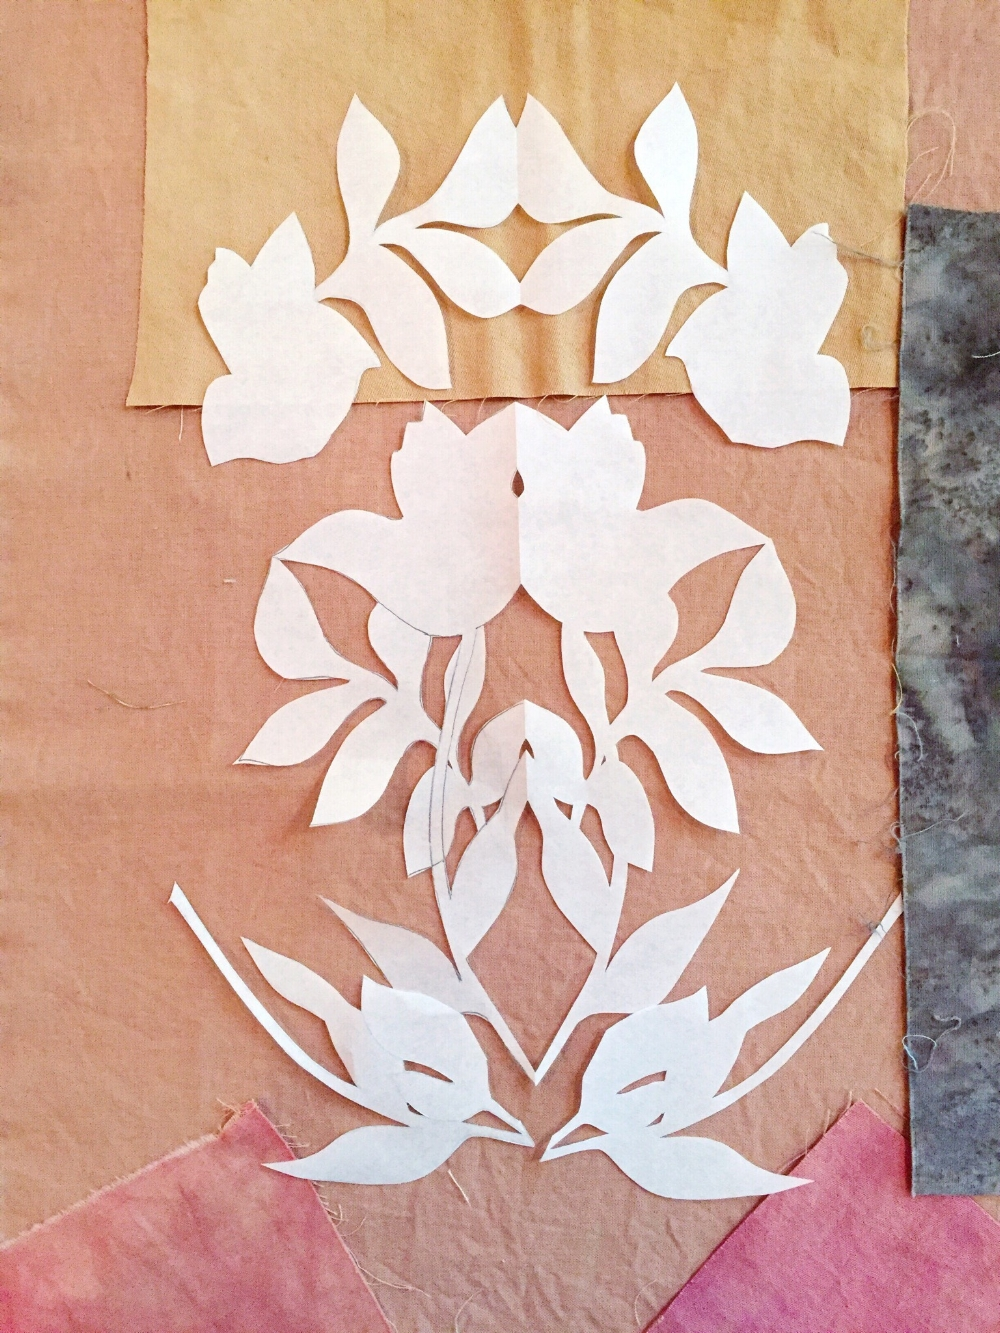 in process: paper-cuts transform into magical fabric compositions